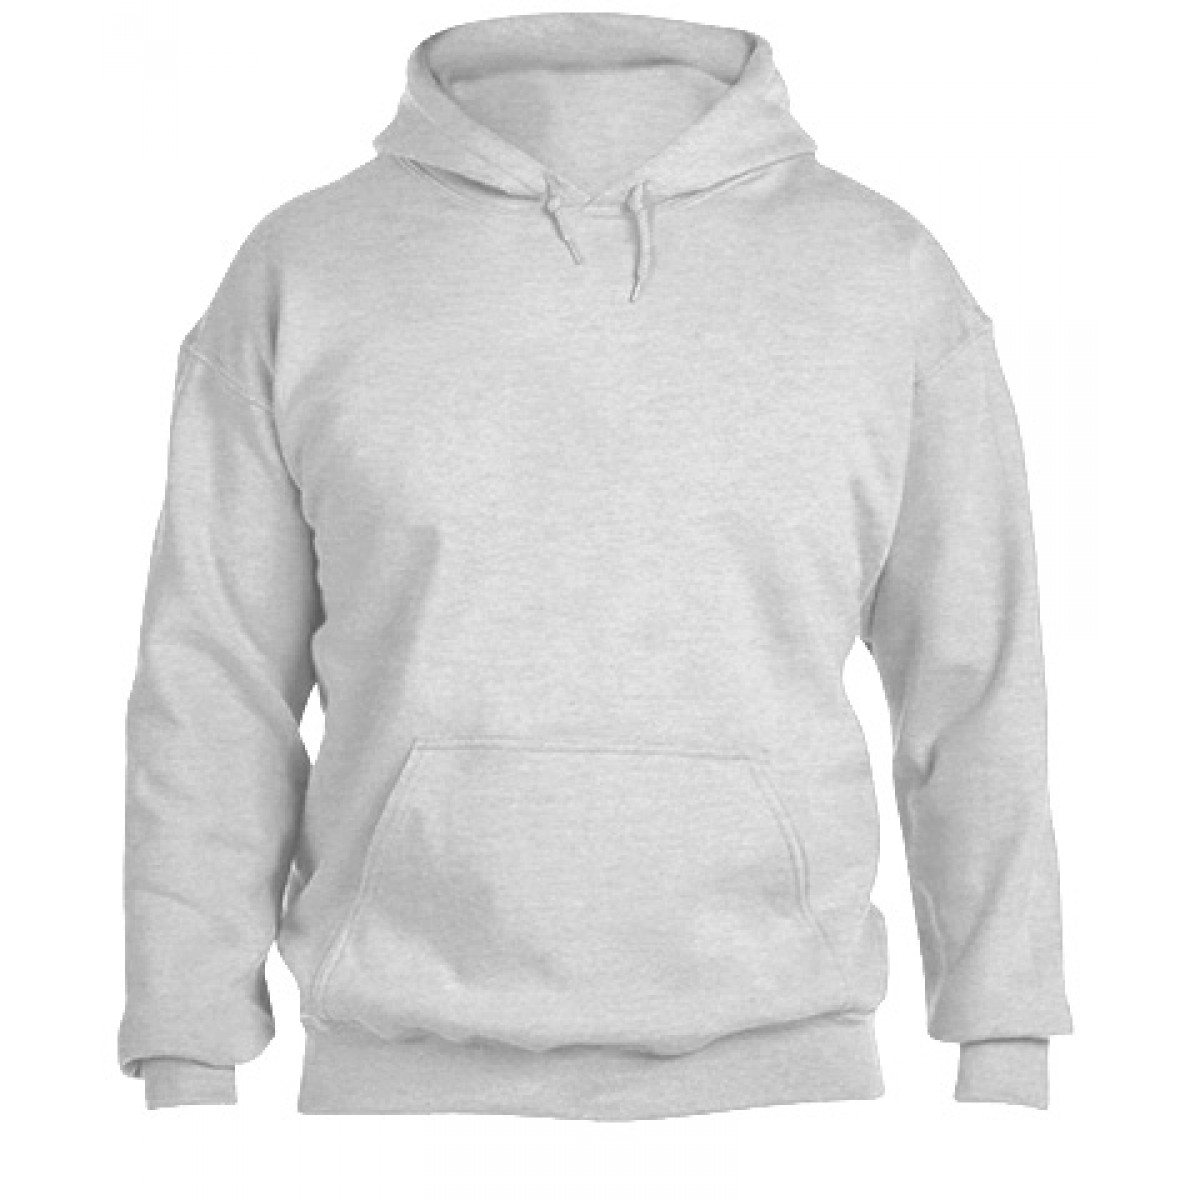 Solid Hooded Sweatshirt  50/50 Heavy Blend-Ash Gray-L